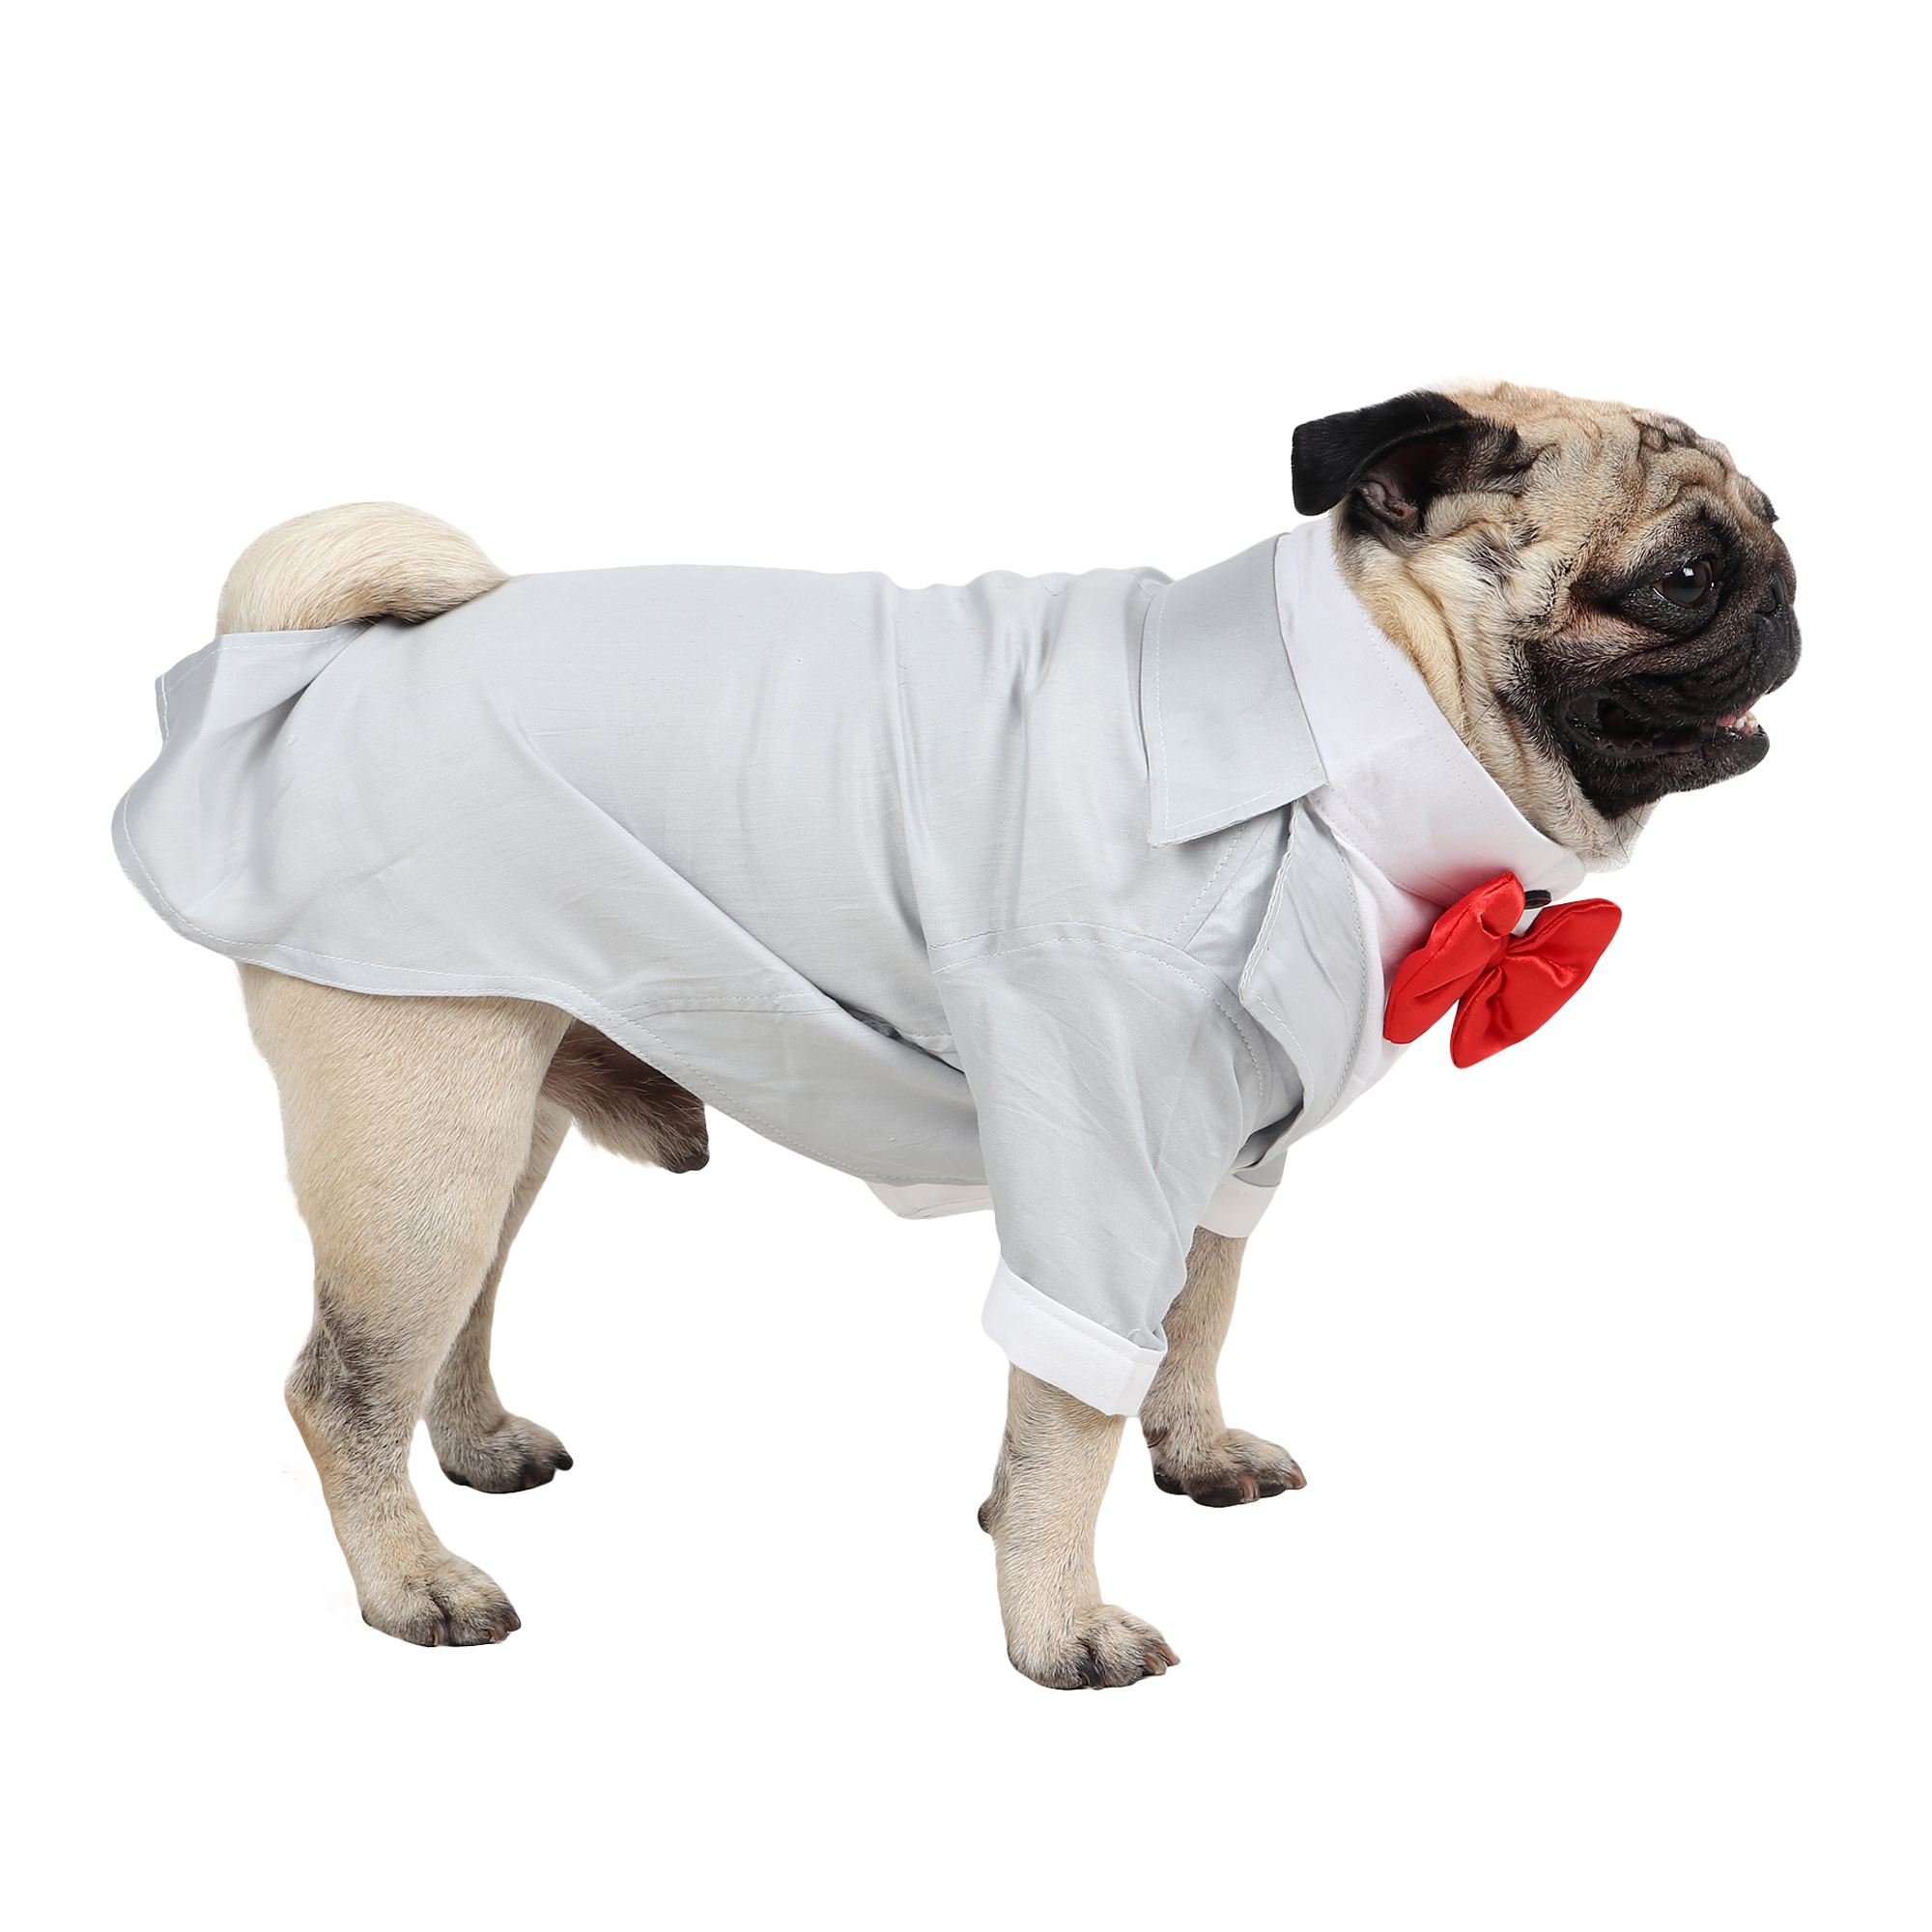 DOUGE COUTURE Party Tuxedo for Dogs (grey)